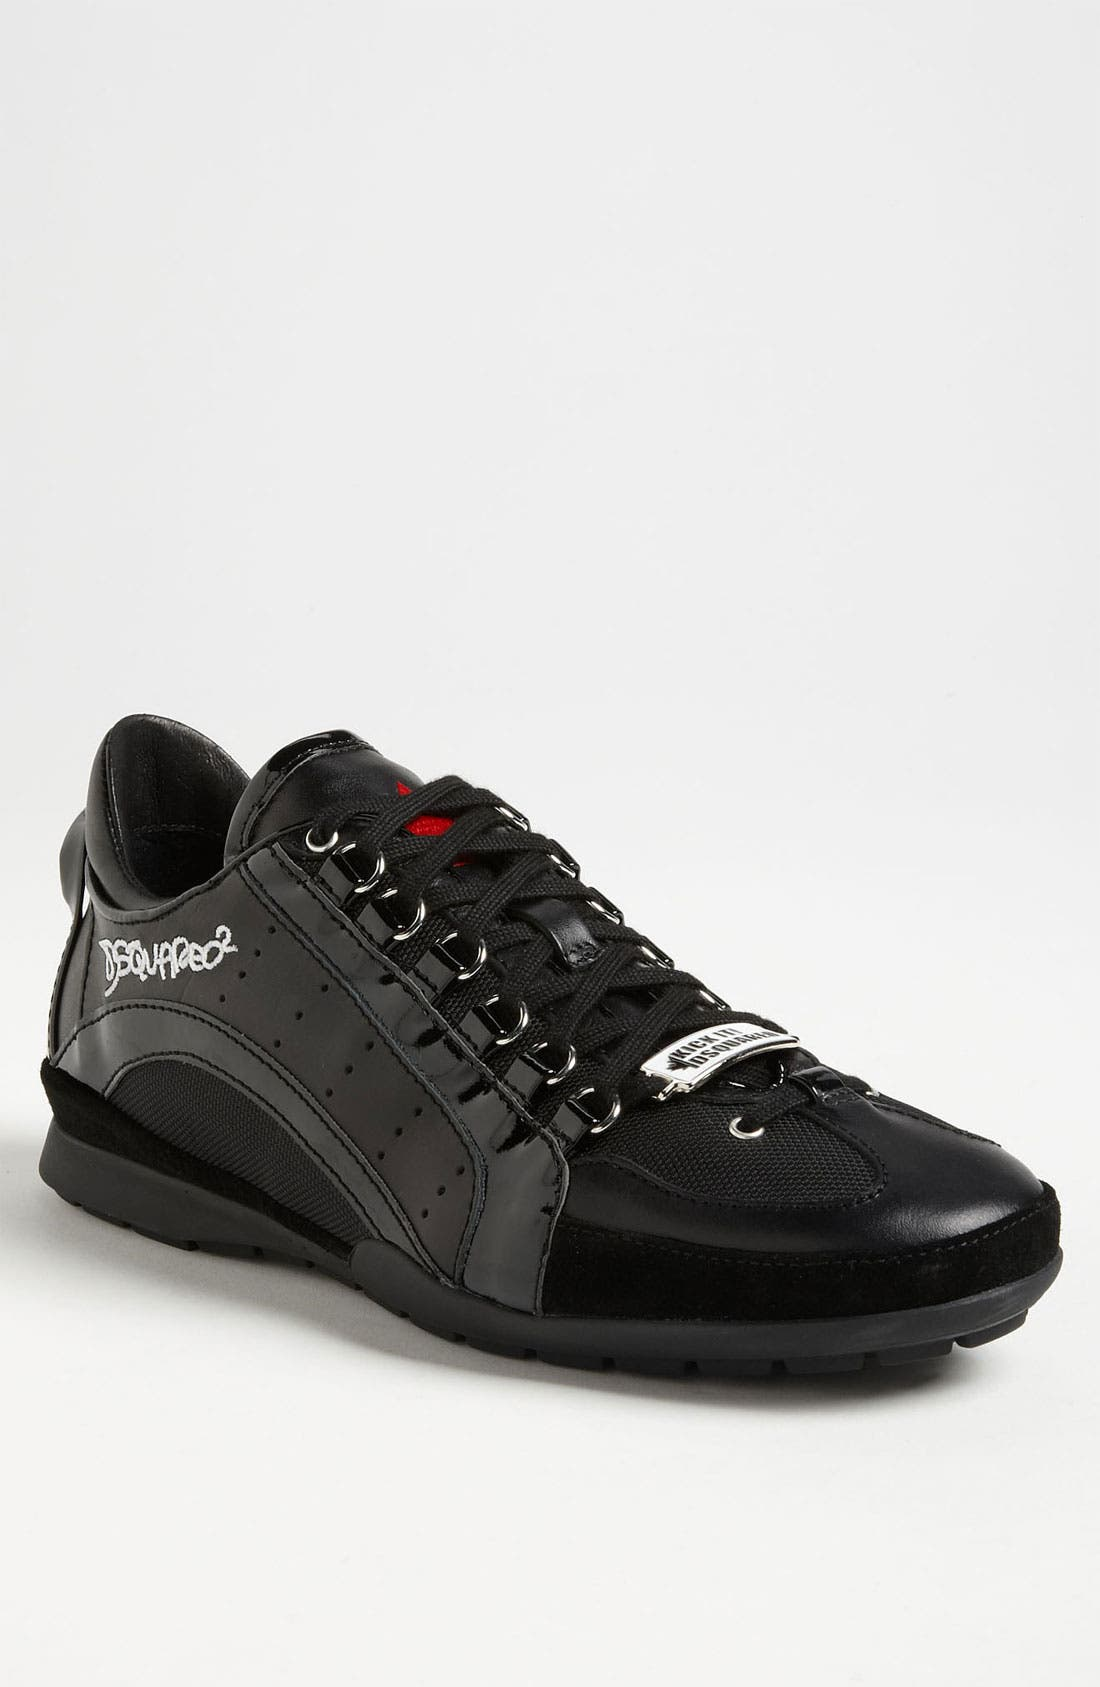 Main Image - Dsquared2 '551 Sport' Sneaker